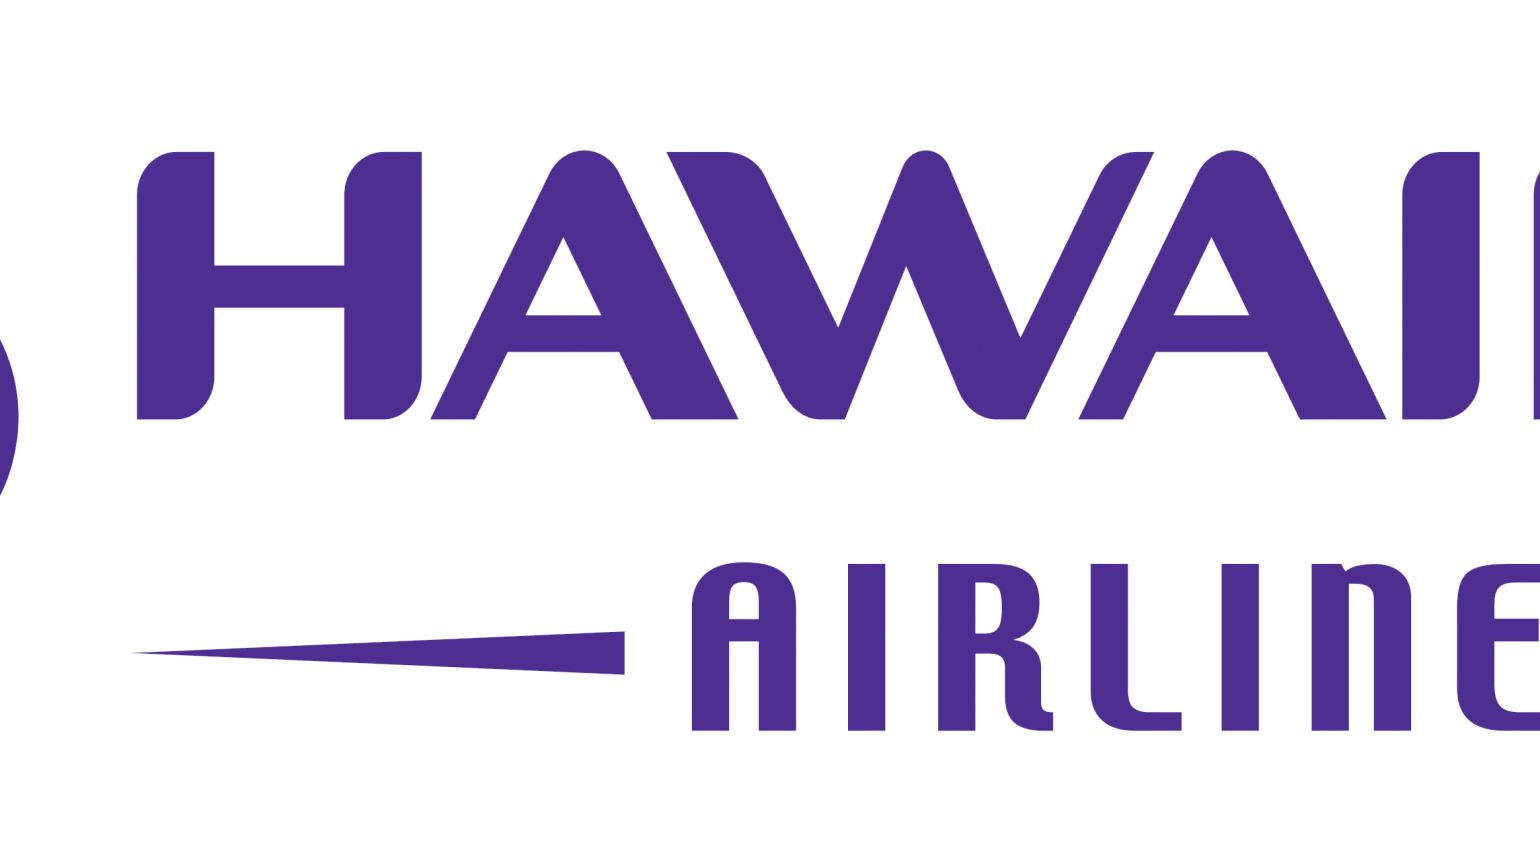 Documentary Feature Competition - MELE MURALS (HAWAIIAN AIR) (1)